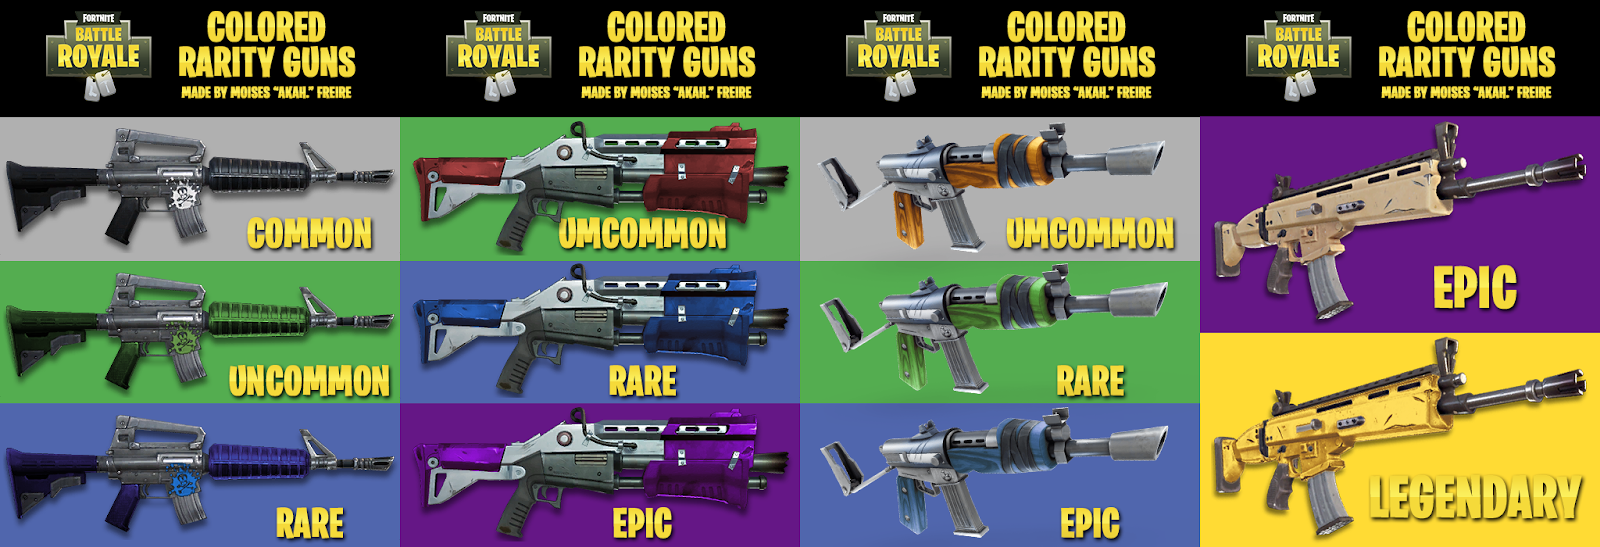 Fortnite Weapon Rarities